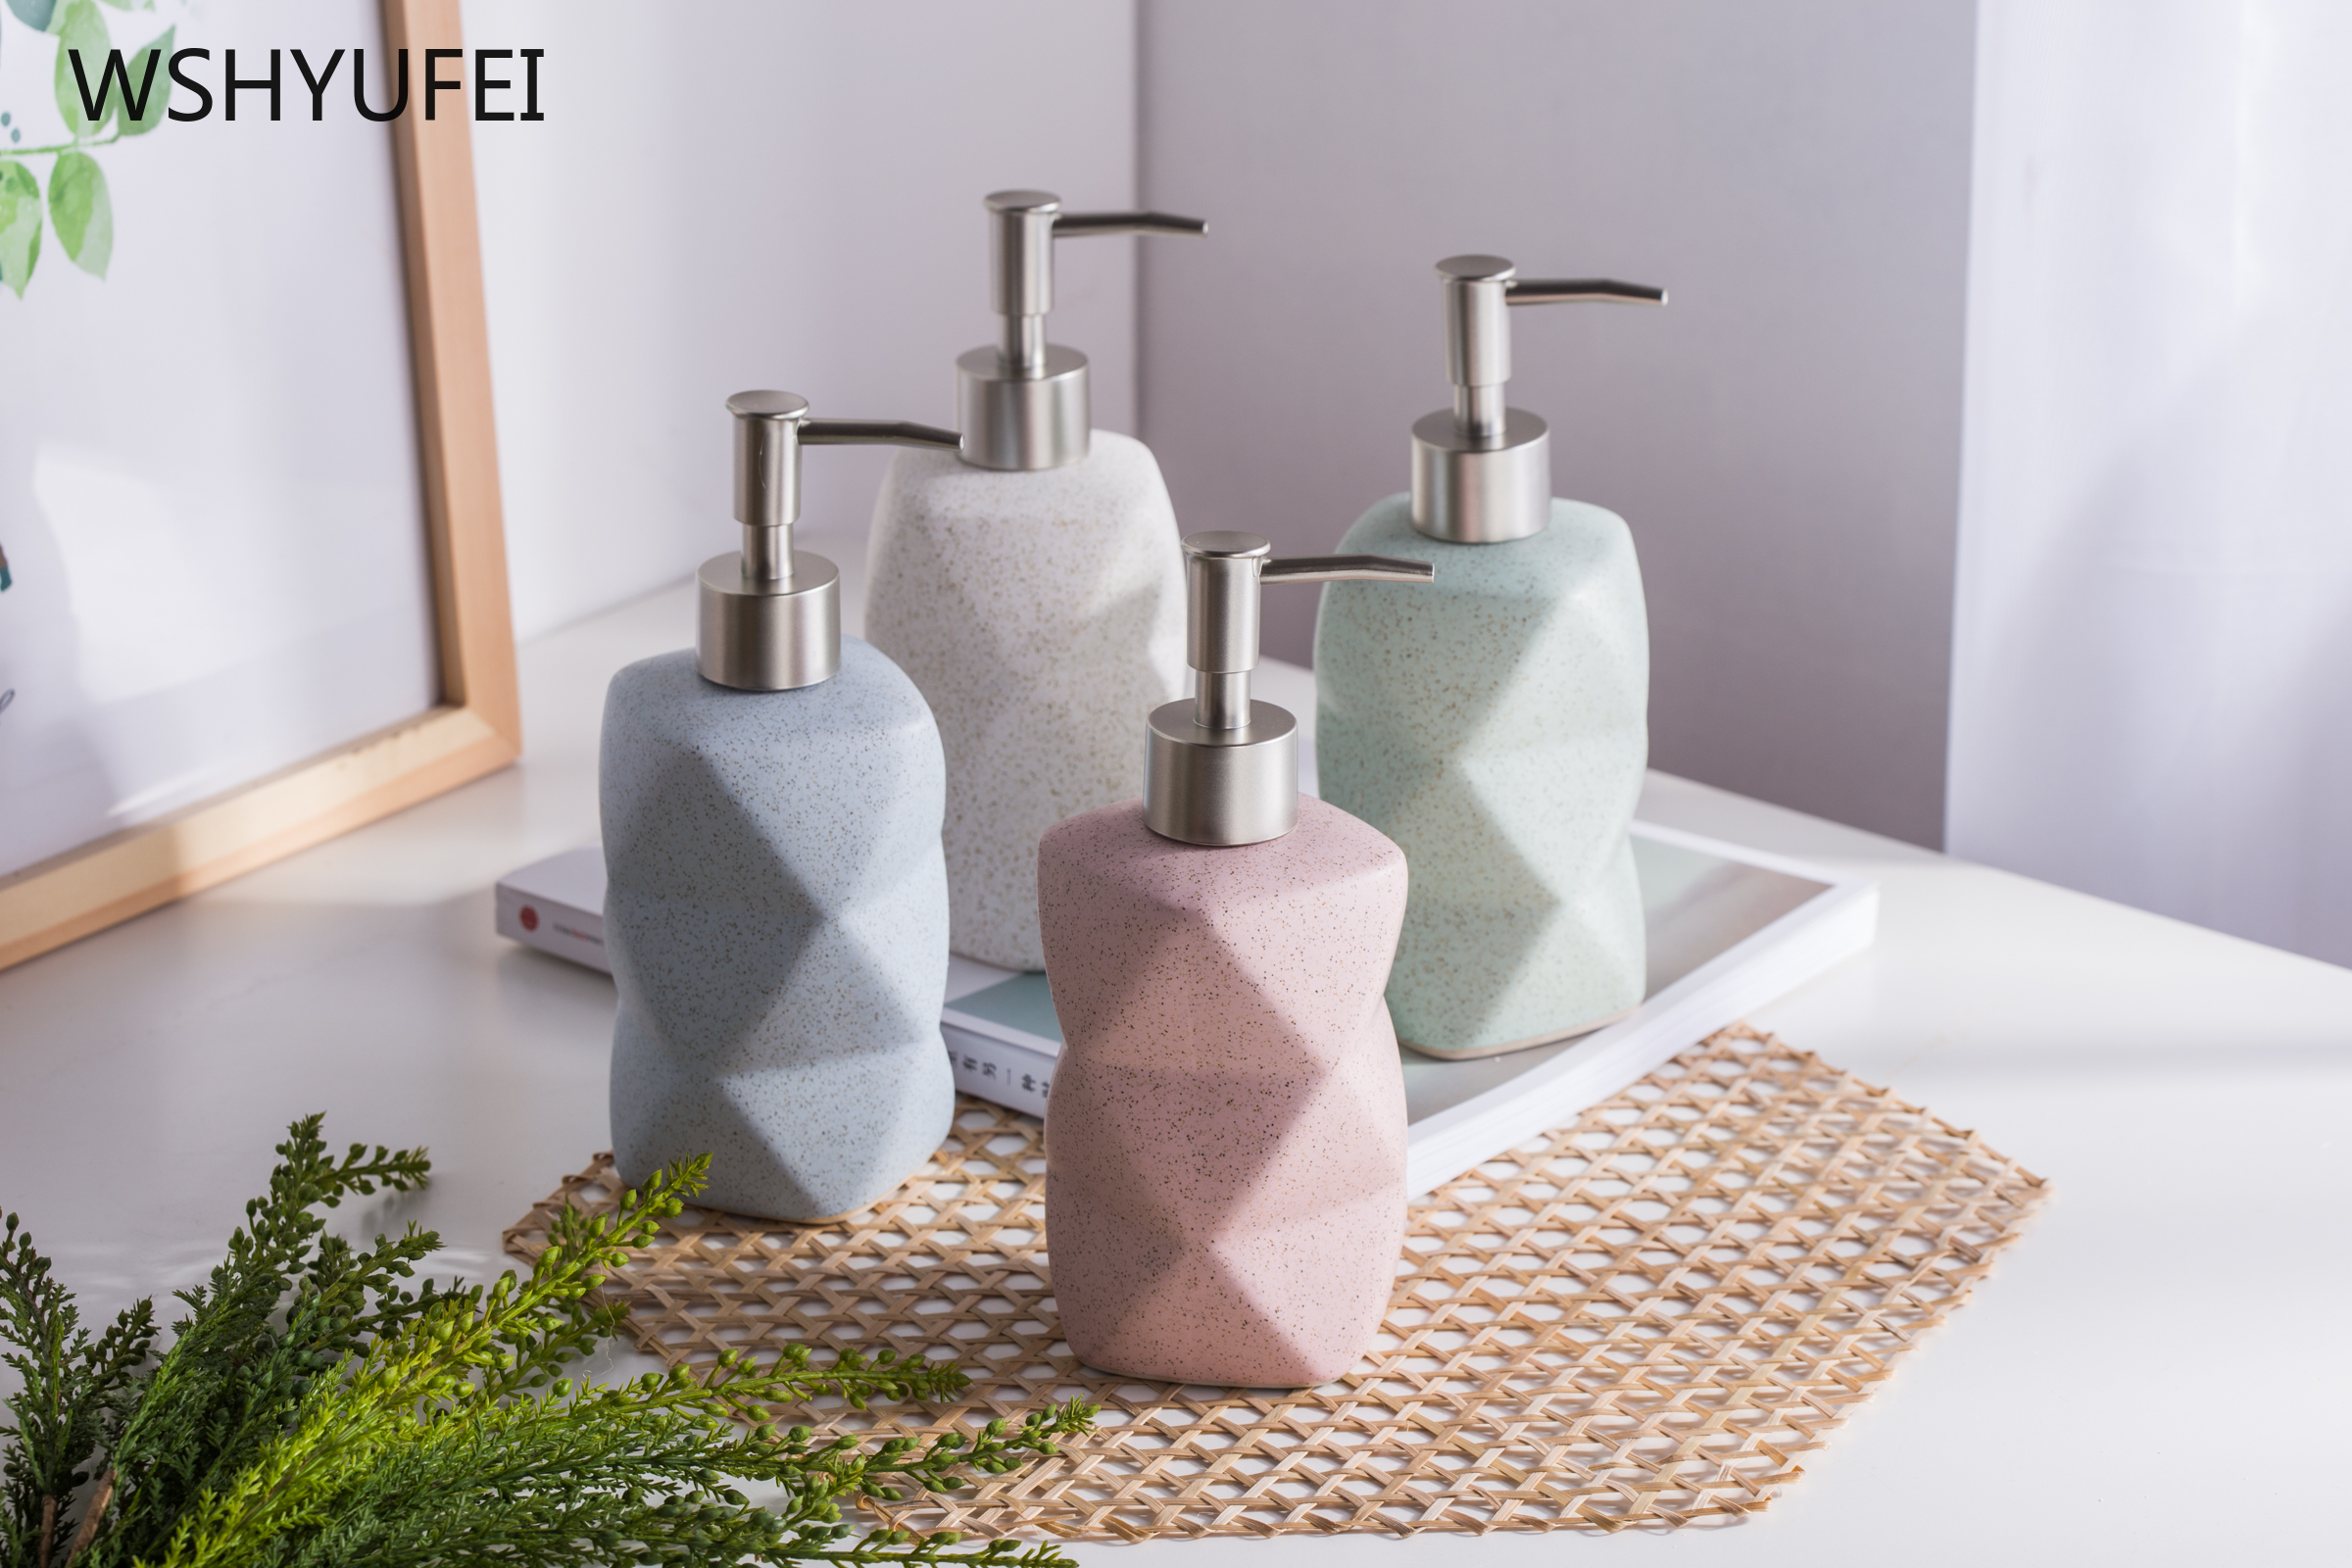 High-grade Geometric Irregular Shape Home Bathroom Ware Ceramic Hand Soap Dispenser Shower Gel Lotion Bottle Press Liquid Bottle